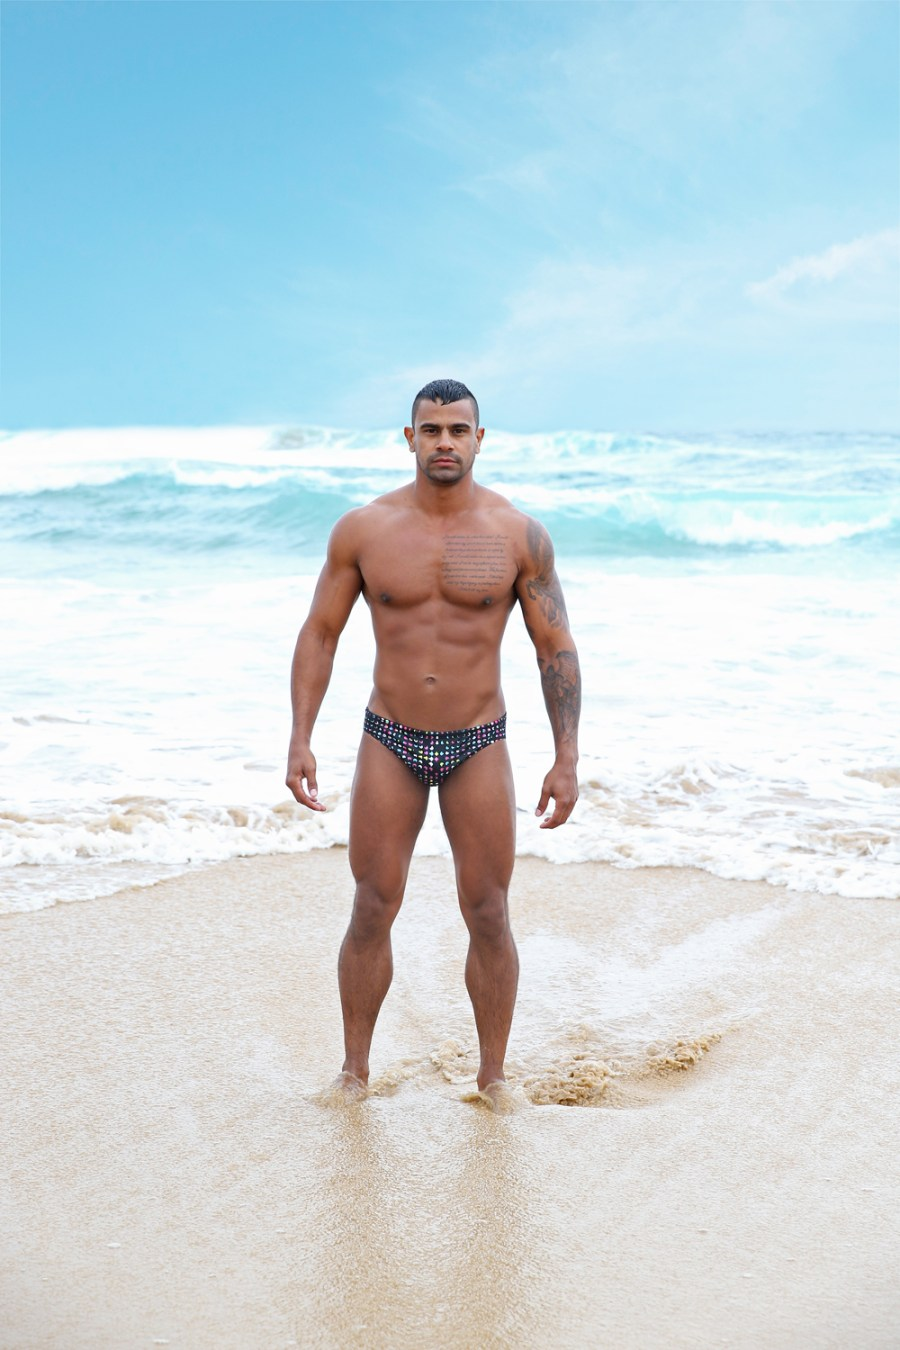 The new fresh shots of Casey Conway promoting new collection from Aussie swimwear brand Sluggers are here to stay. Sluggers is taking you to comfortness, security with original designs ready for you.